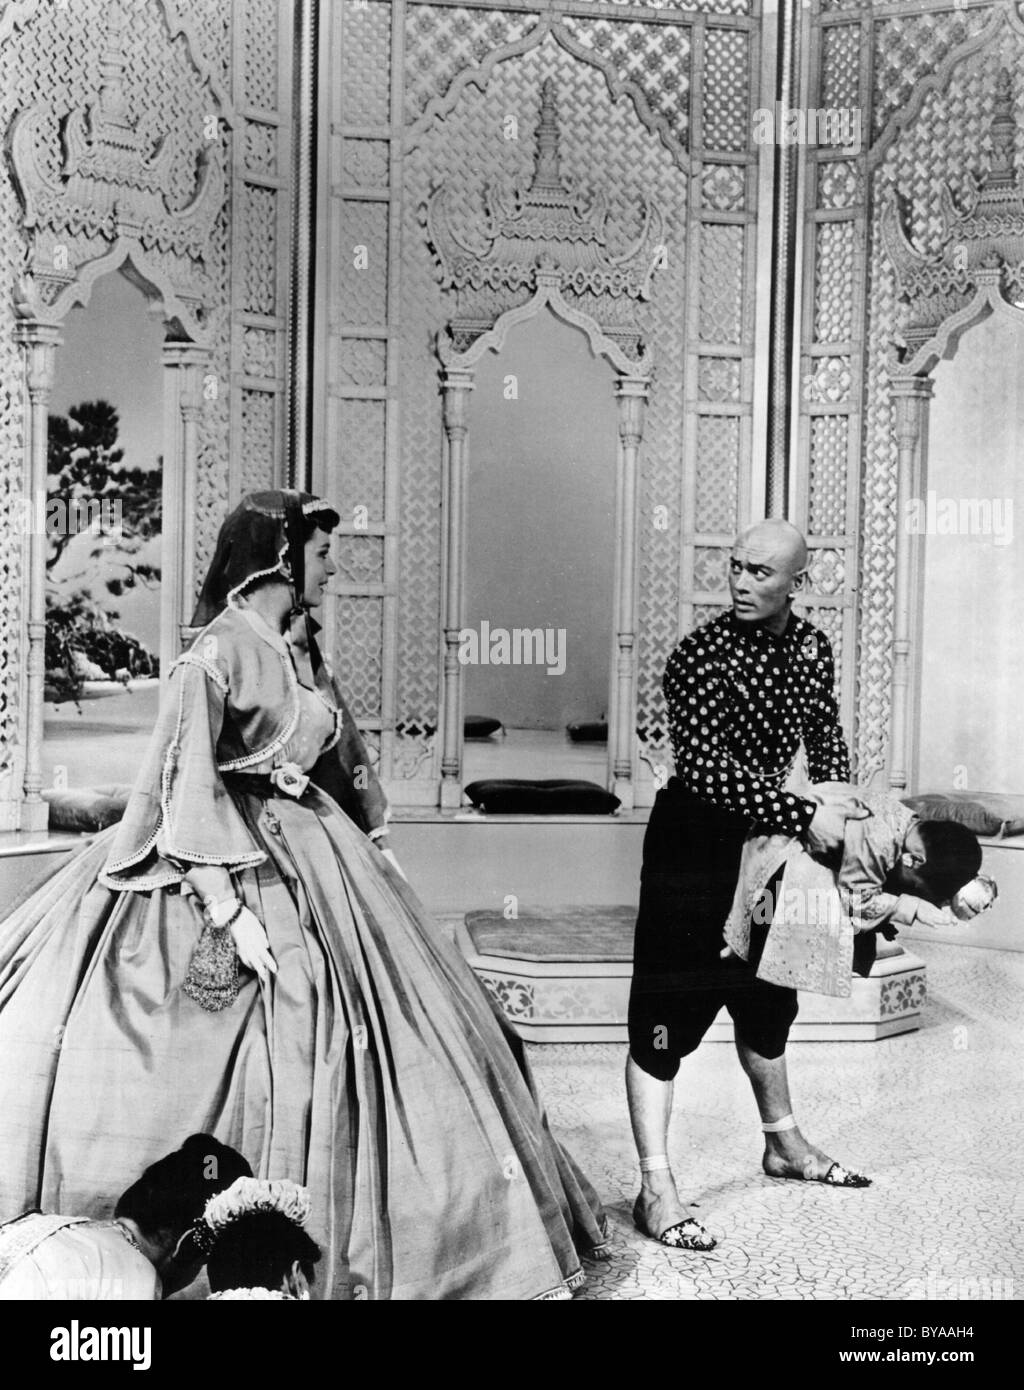 The King and I Year : 1956 USA Director : Walter Lang Deborah Kerr, Yul Brynner - Stock Image